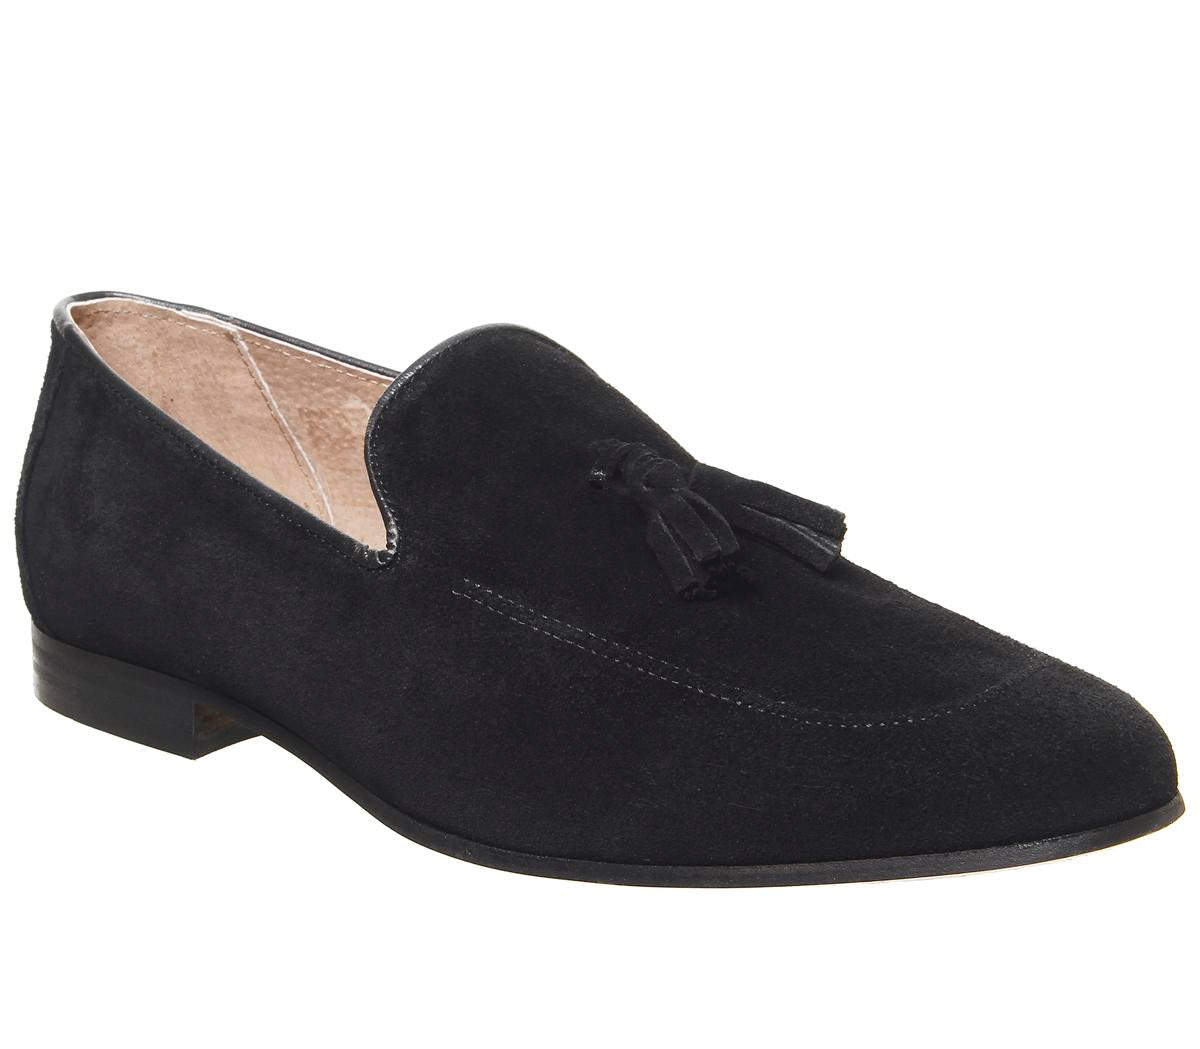 Mens Office Canter Tassel Loafer Black Suede